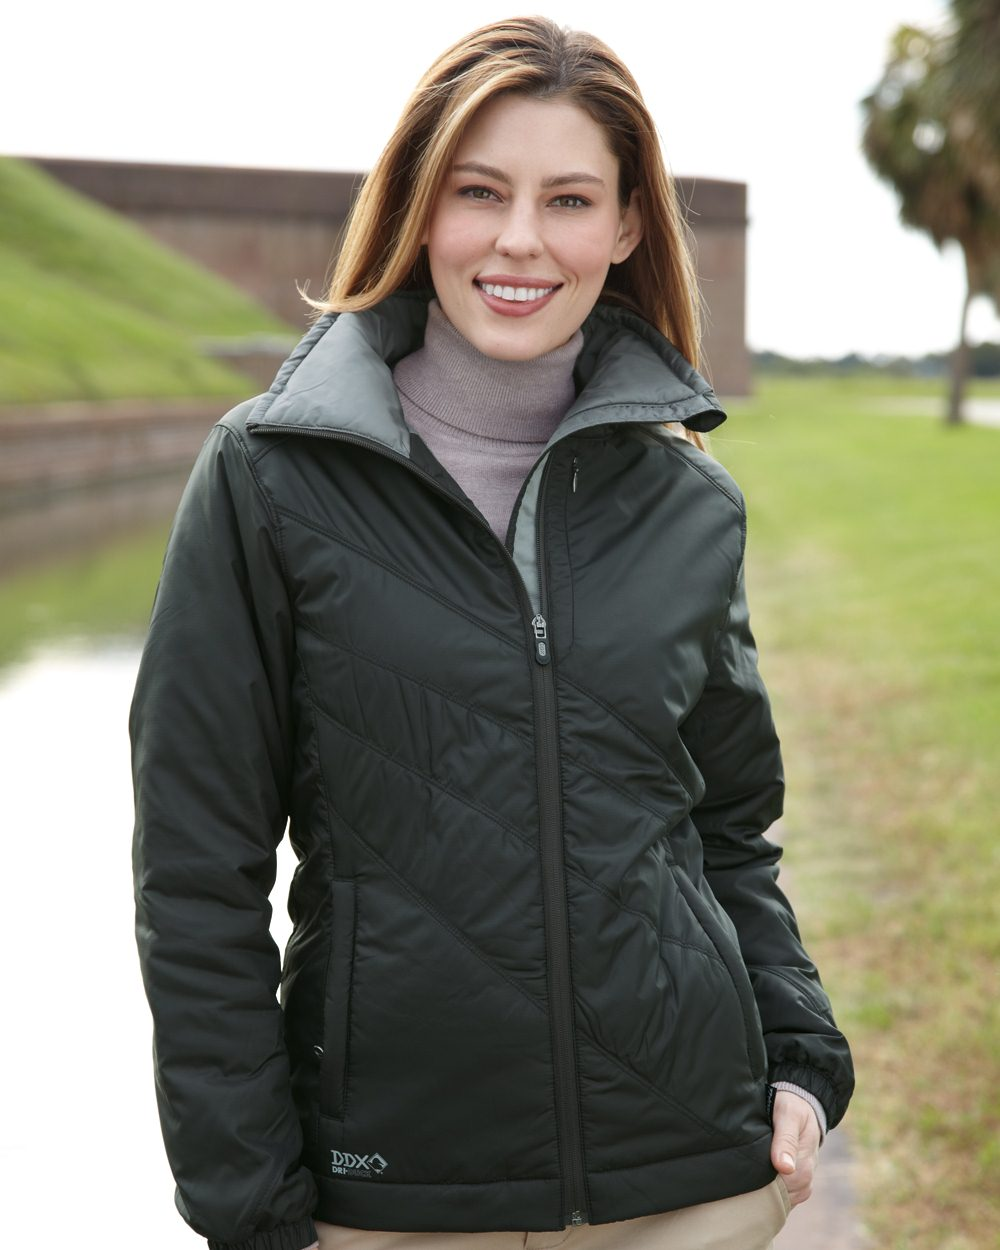 DRI DUCK Solstice Ladies' Thinsulate™ Lined Puffer Jacket - 9413